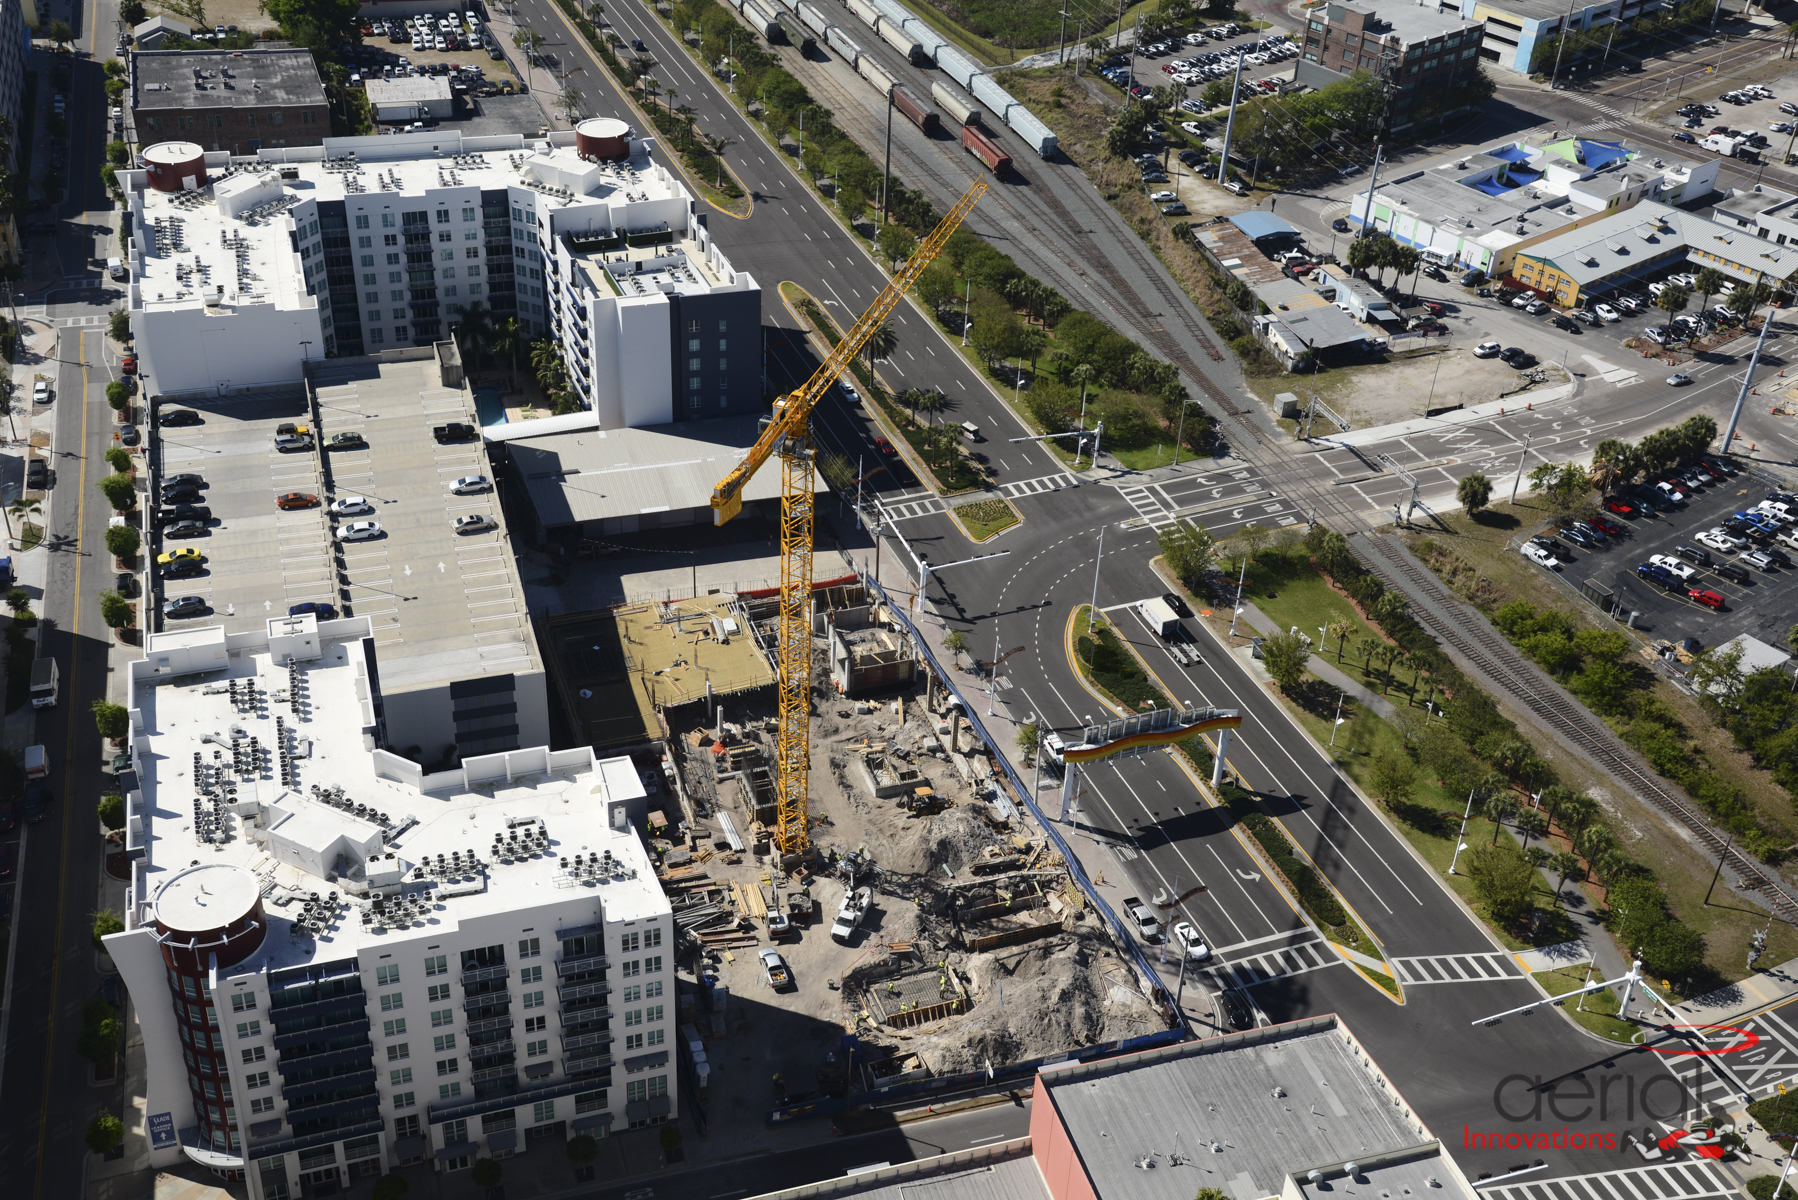 Hampton Inn/Home2 Suites in Channelside